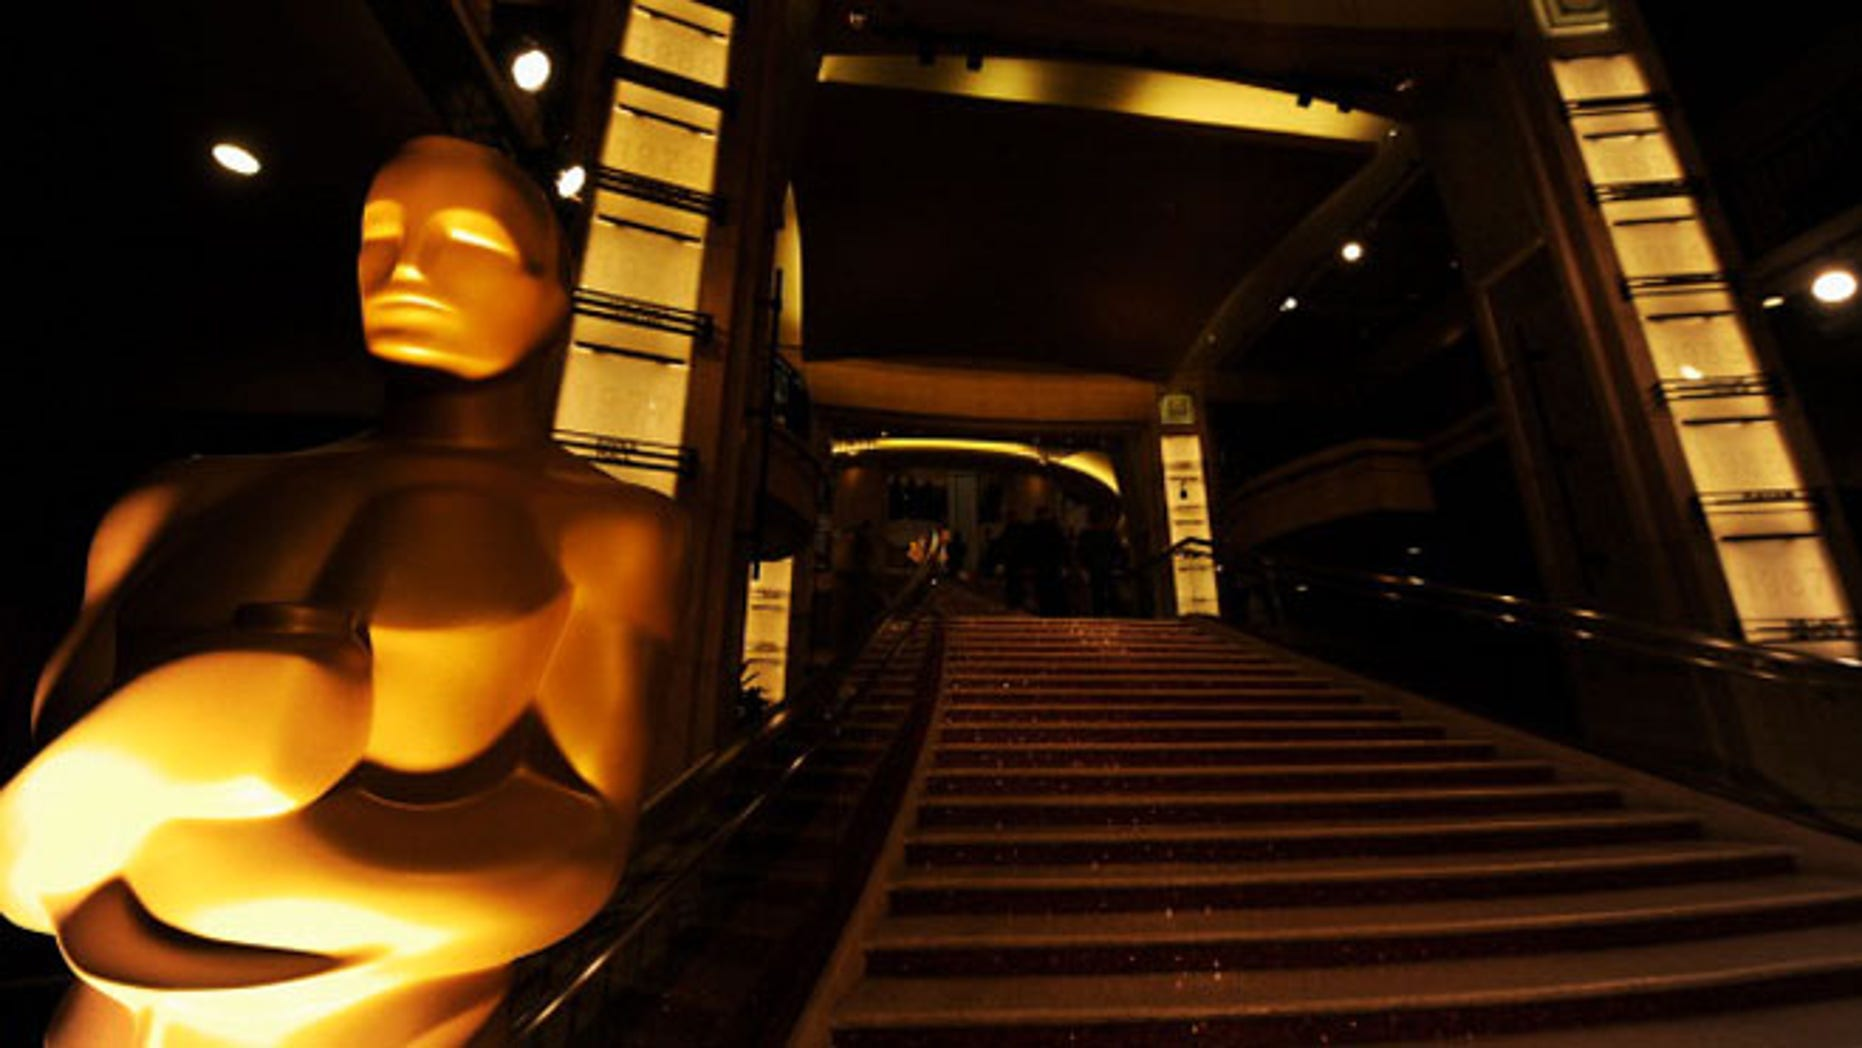 The Oscar statue is seen at the entrance of the Hollywood & Highland Center.